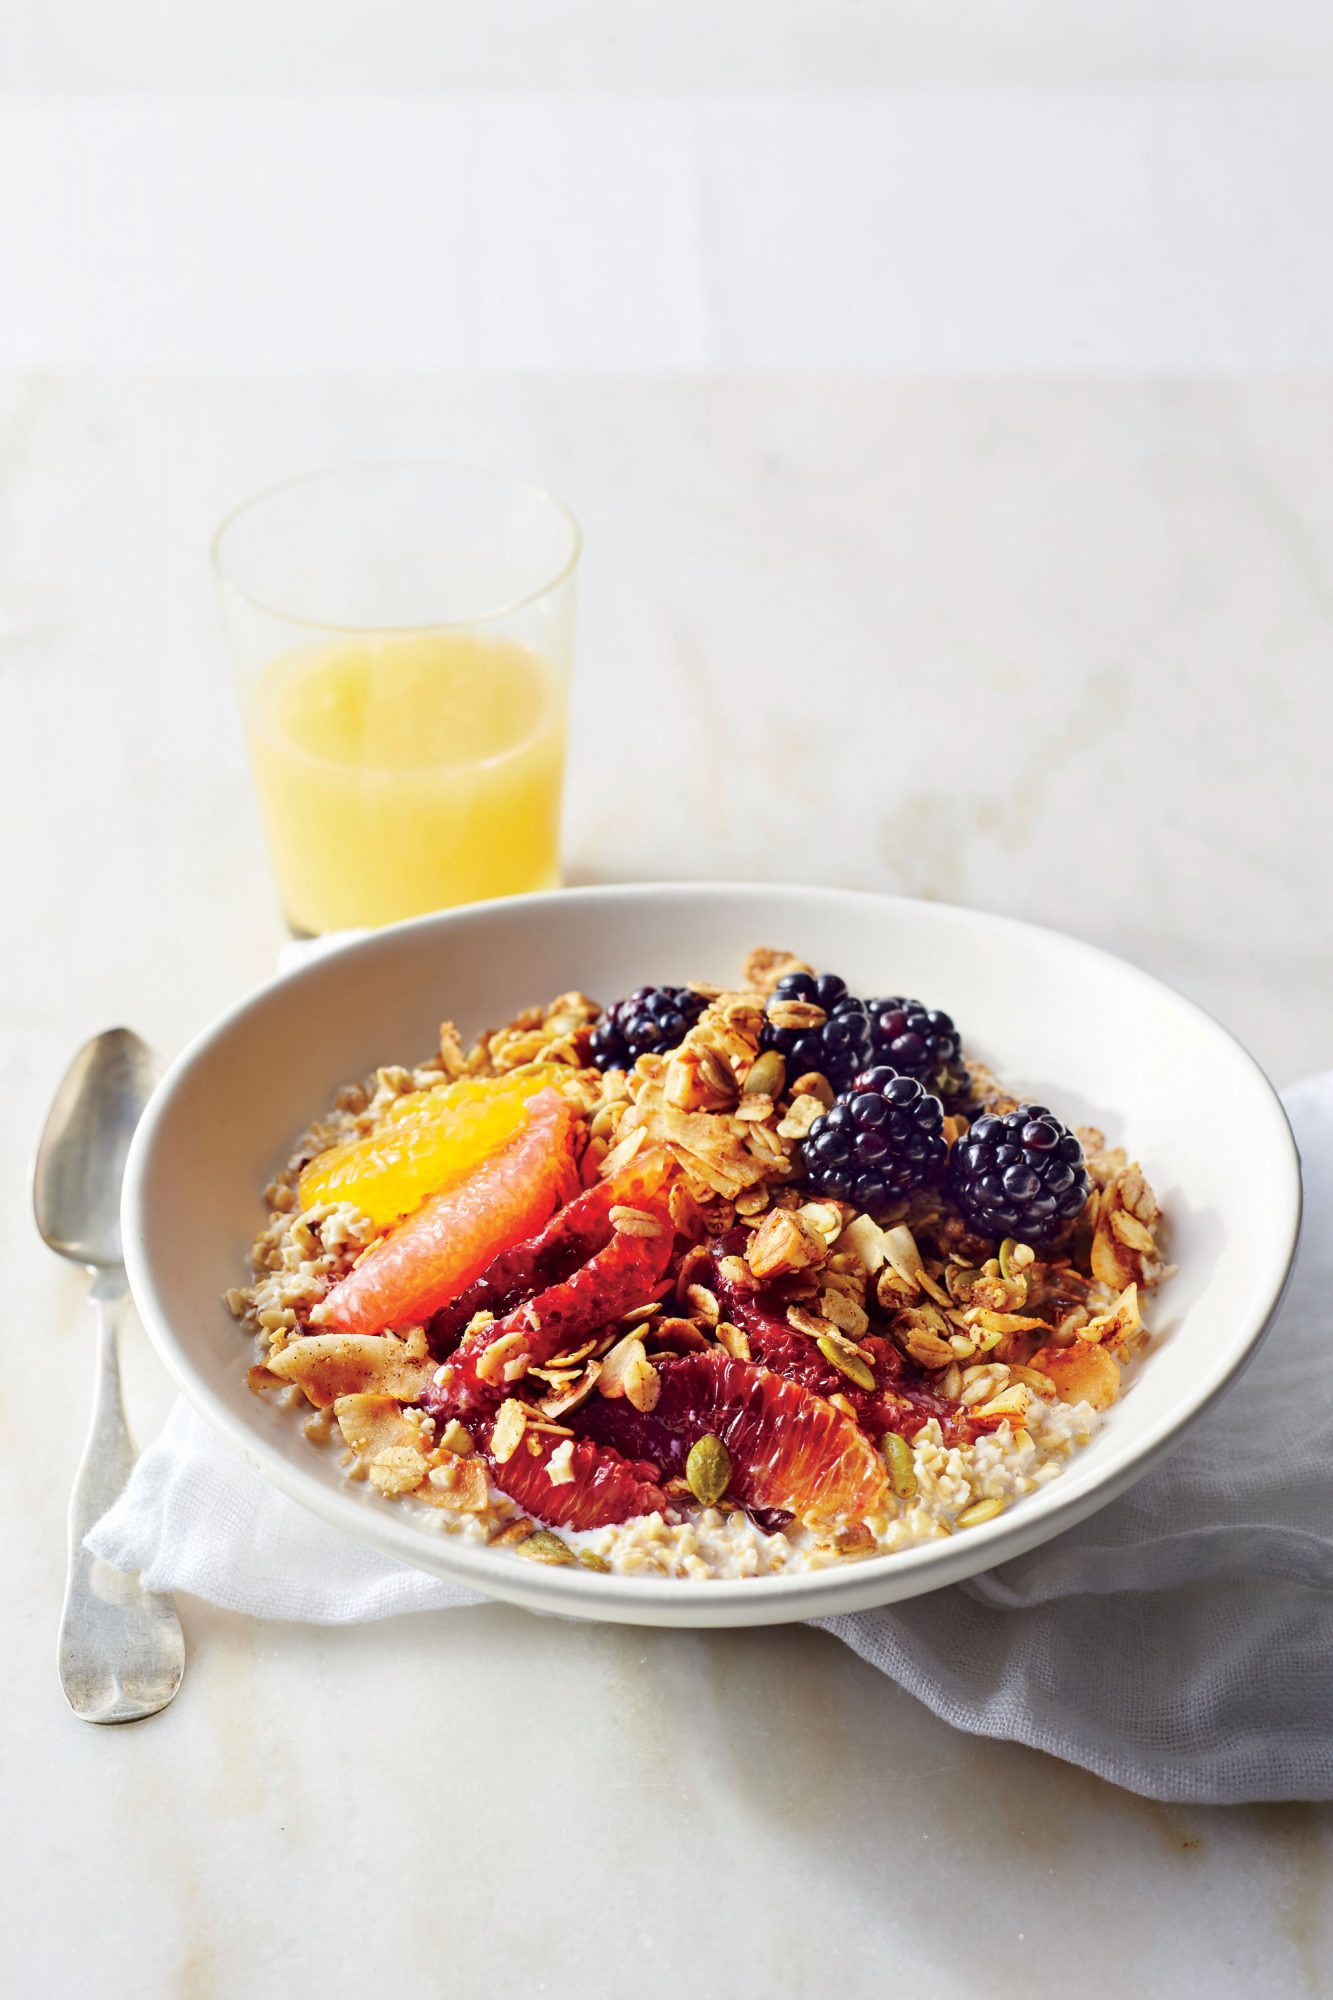 Blackberry-Citrus Granola Bowl image